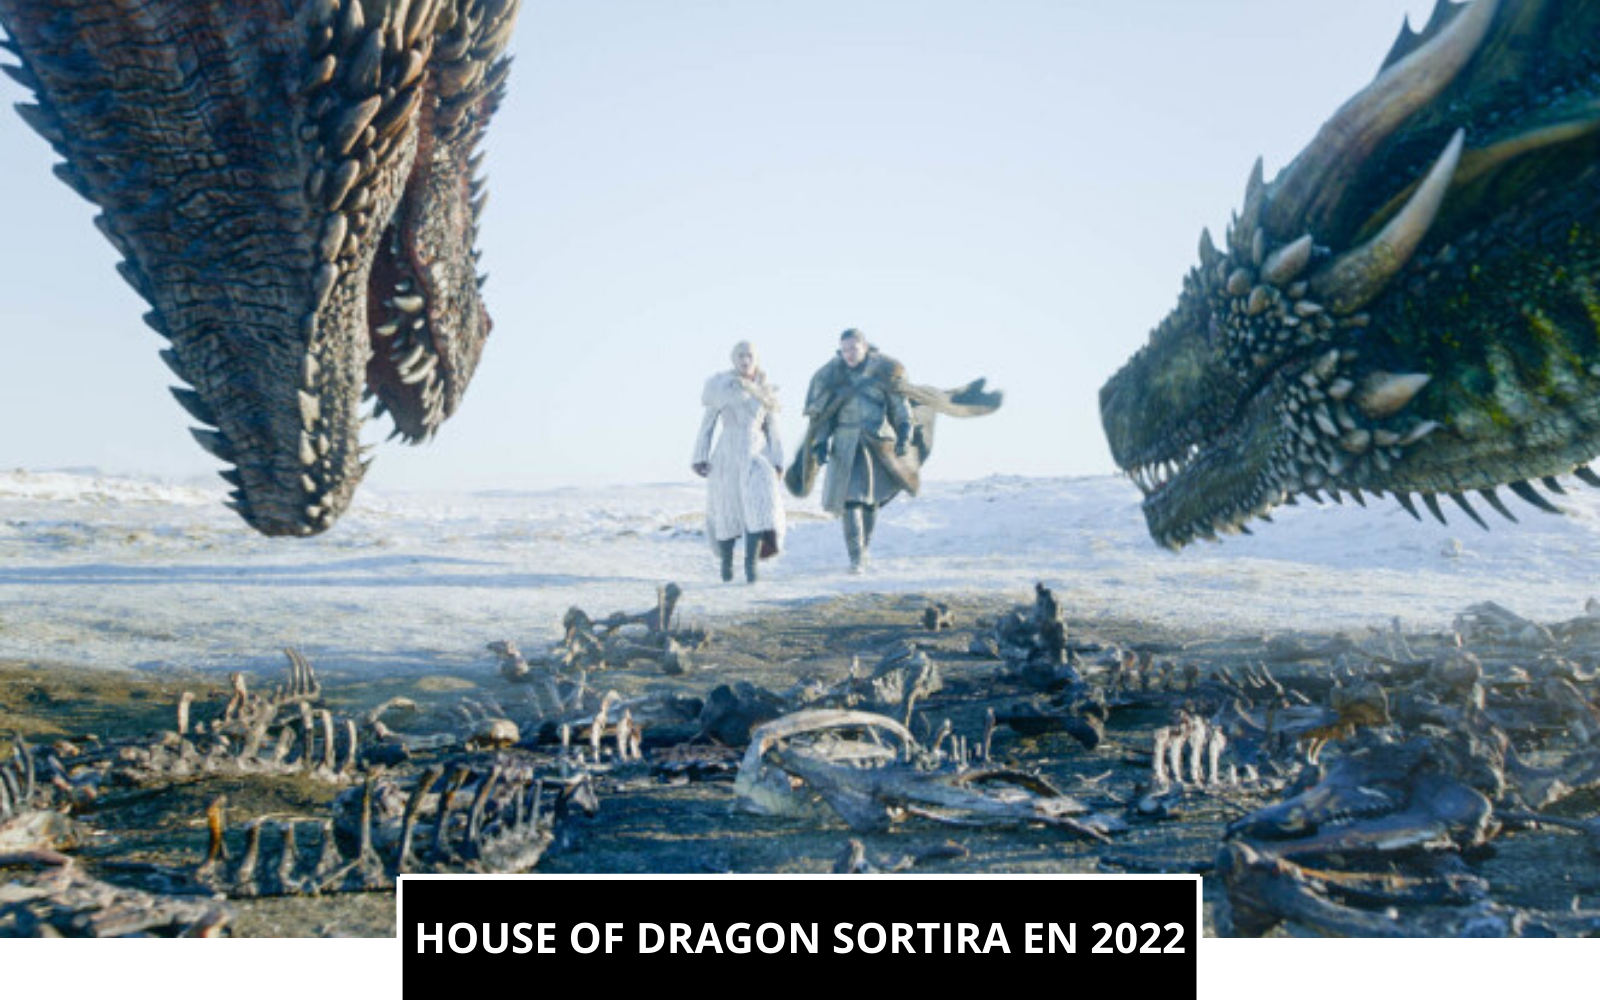 hOUSE oF dRAGON EN 2022 DRAGONYS